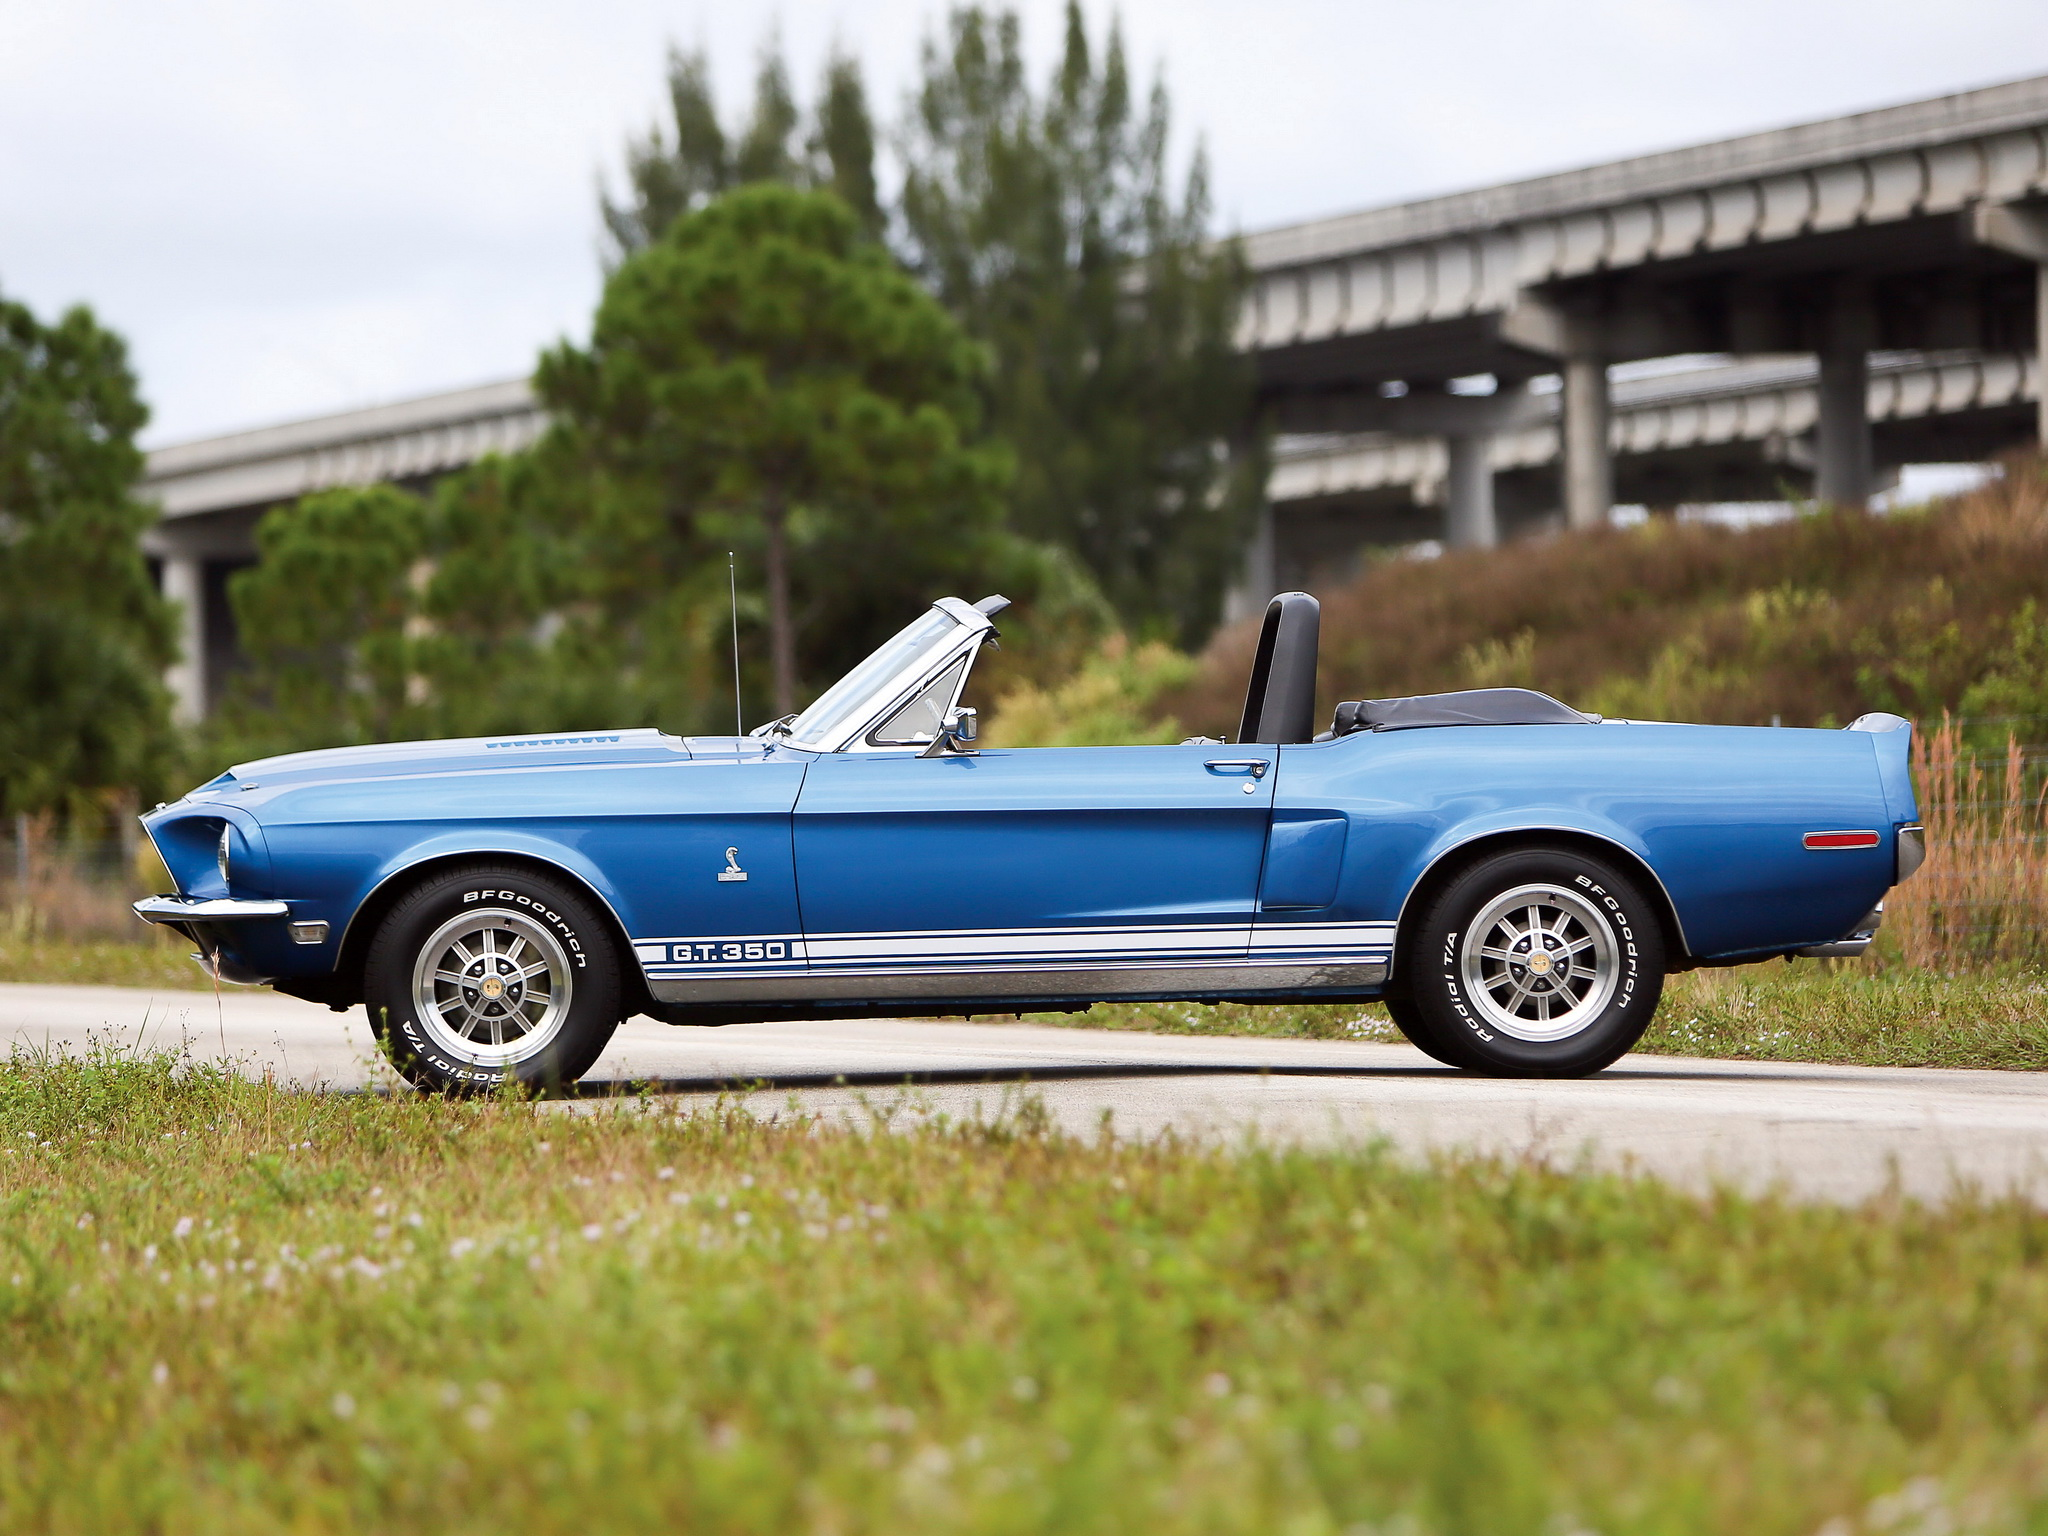 Mustang 2017 Shelby >> 1968 Shelby GT350 Convertible ford mustang muscle classic ...